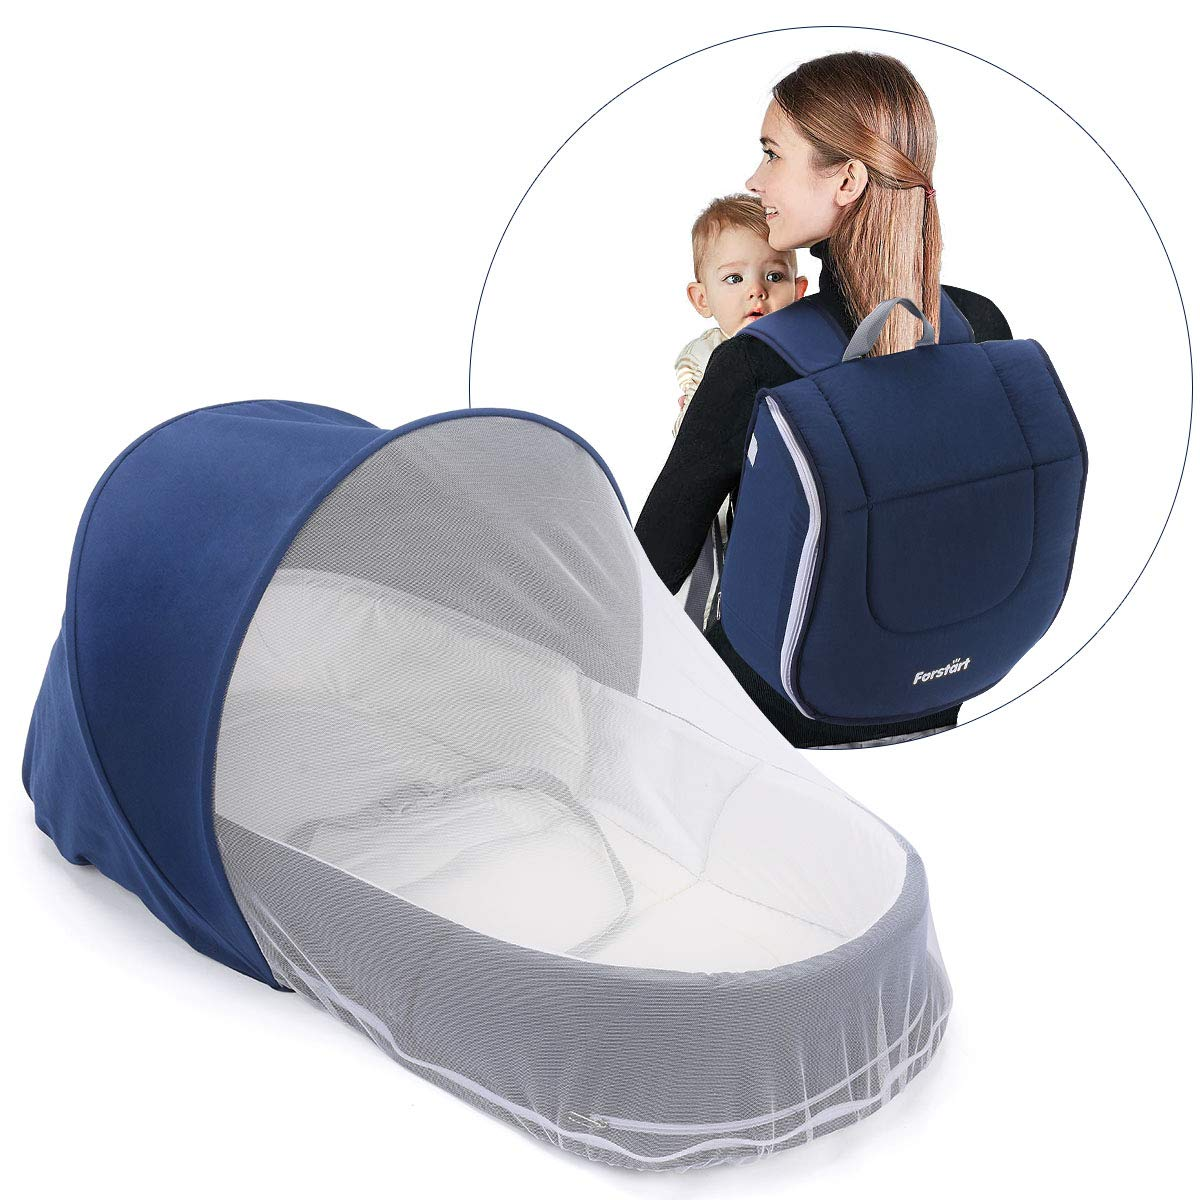 Forstart Baby Snuggle Nest Baby Lounger Baby Diaper Bag for Travel Infant Sleeper Portable Baby Bed or Bassinet with Free Diaper Changing Pad Canopy and Bug Net Included by Forstart